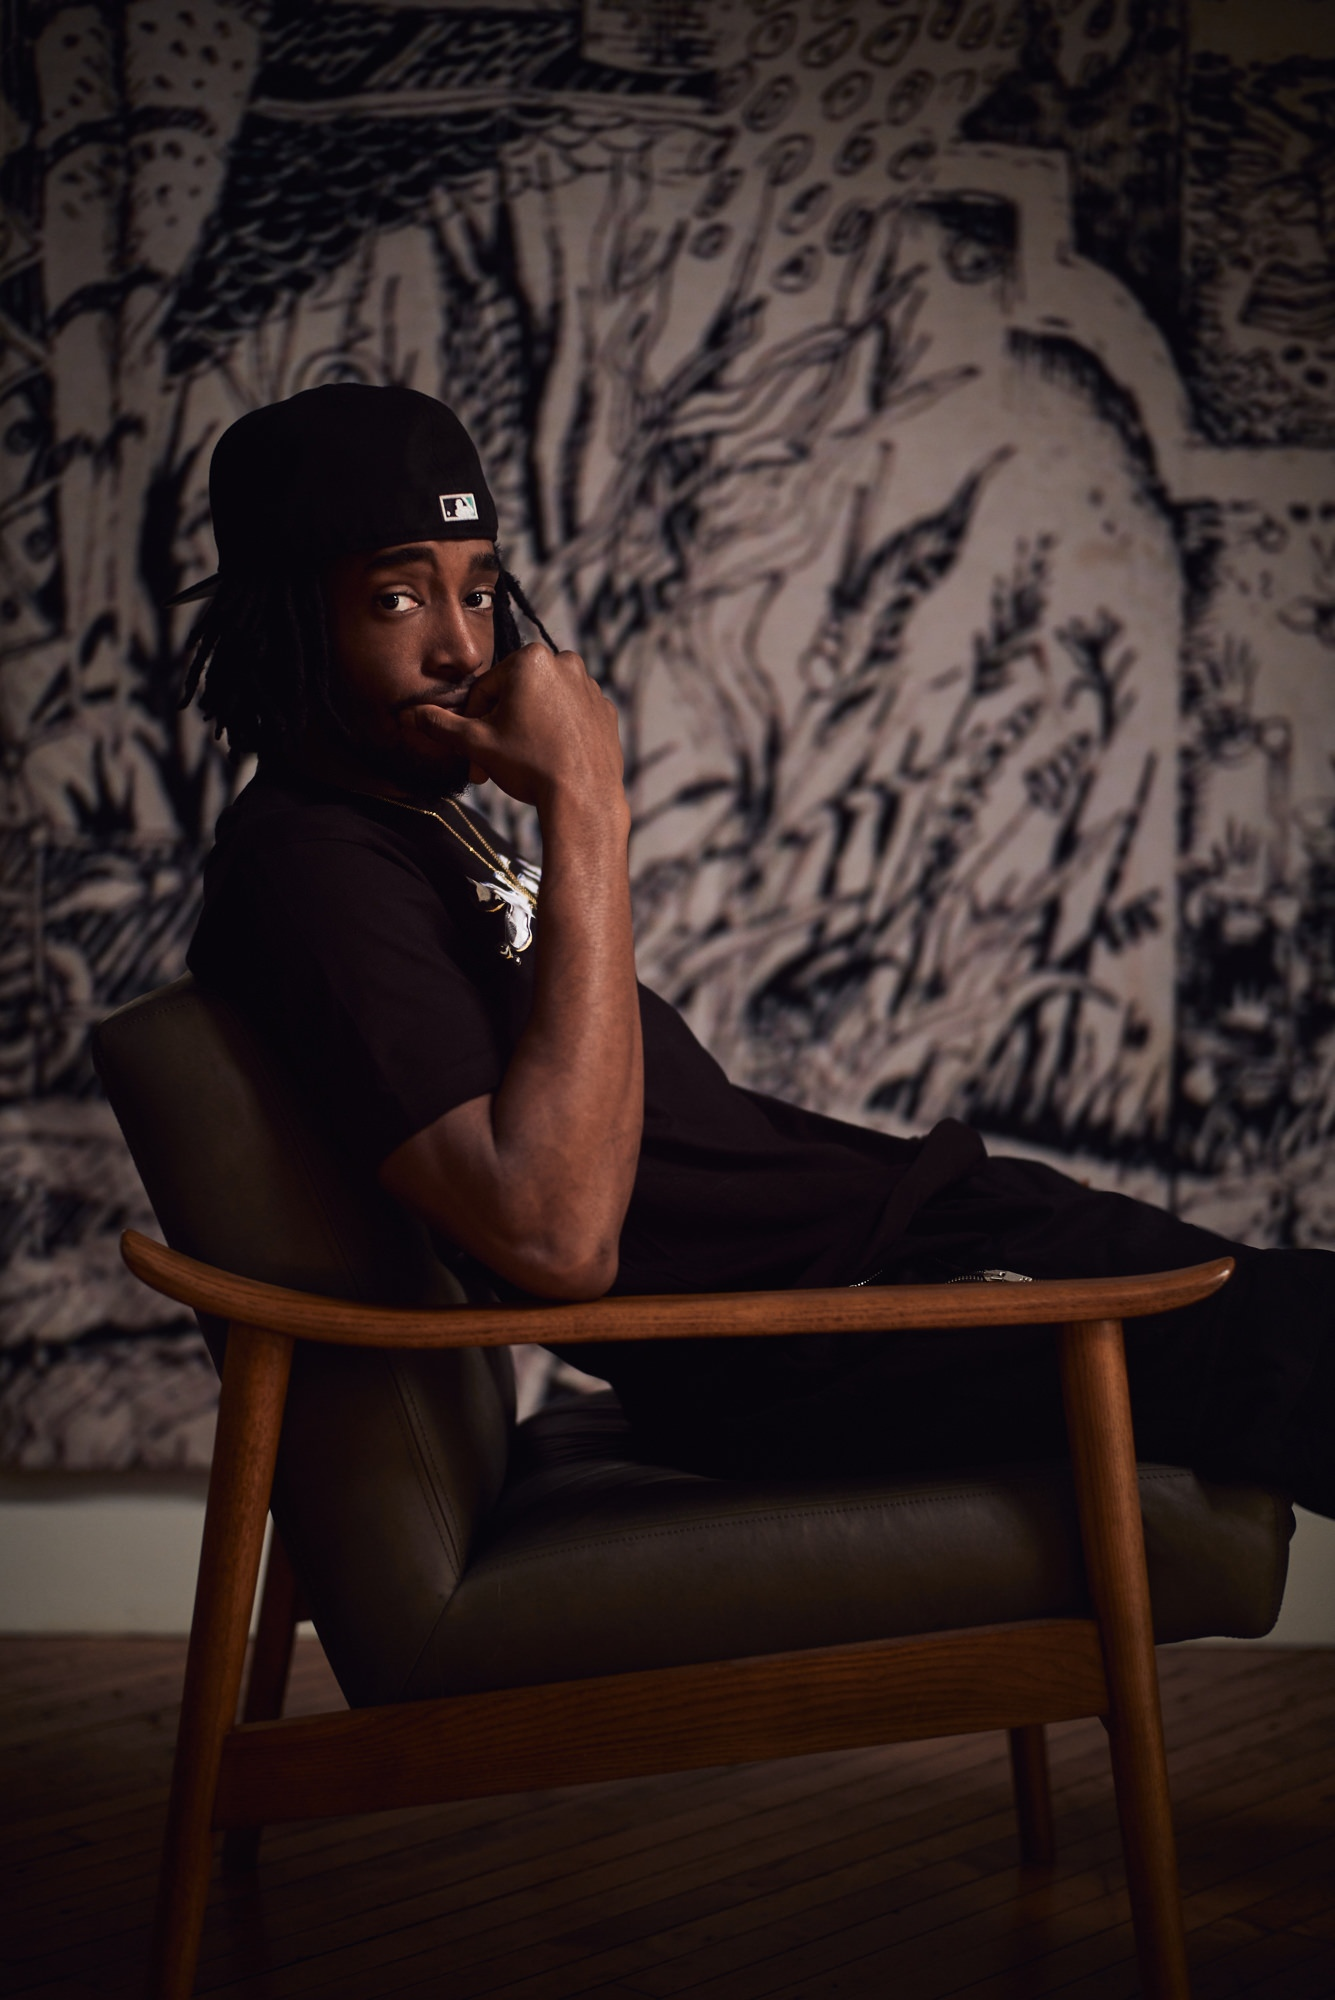 Photo Sessions With Allentown-based Hip-Hop Artist Black Dre